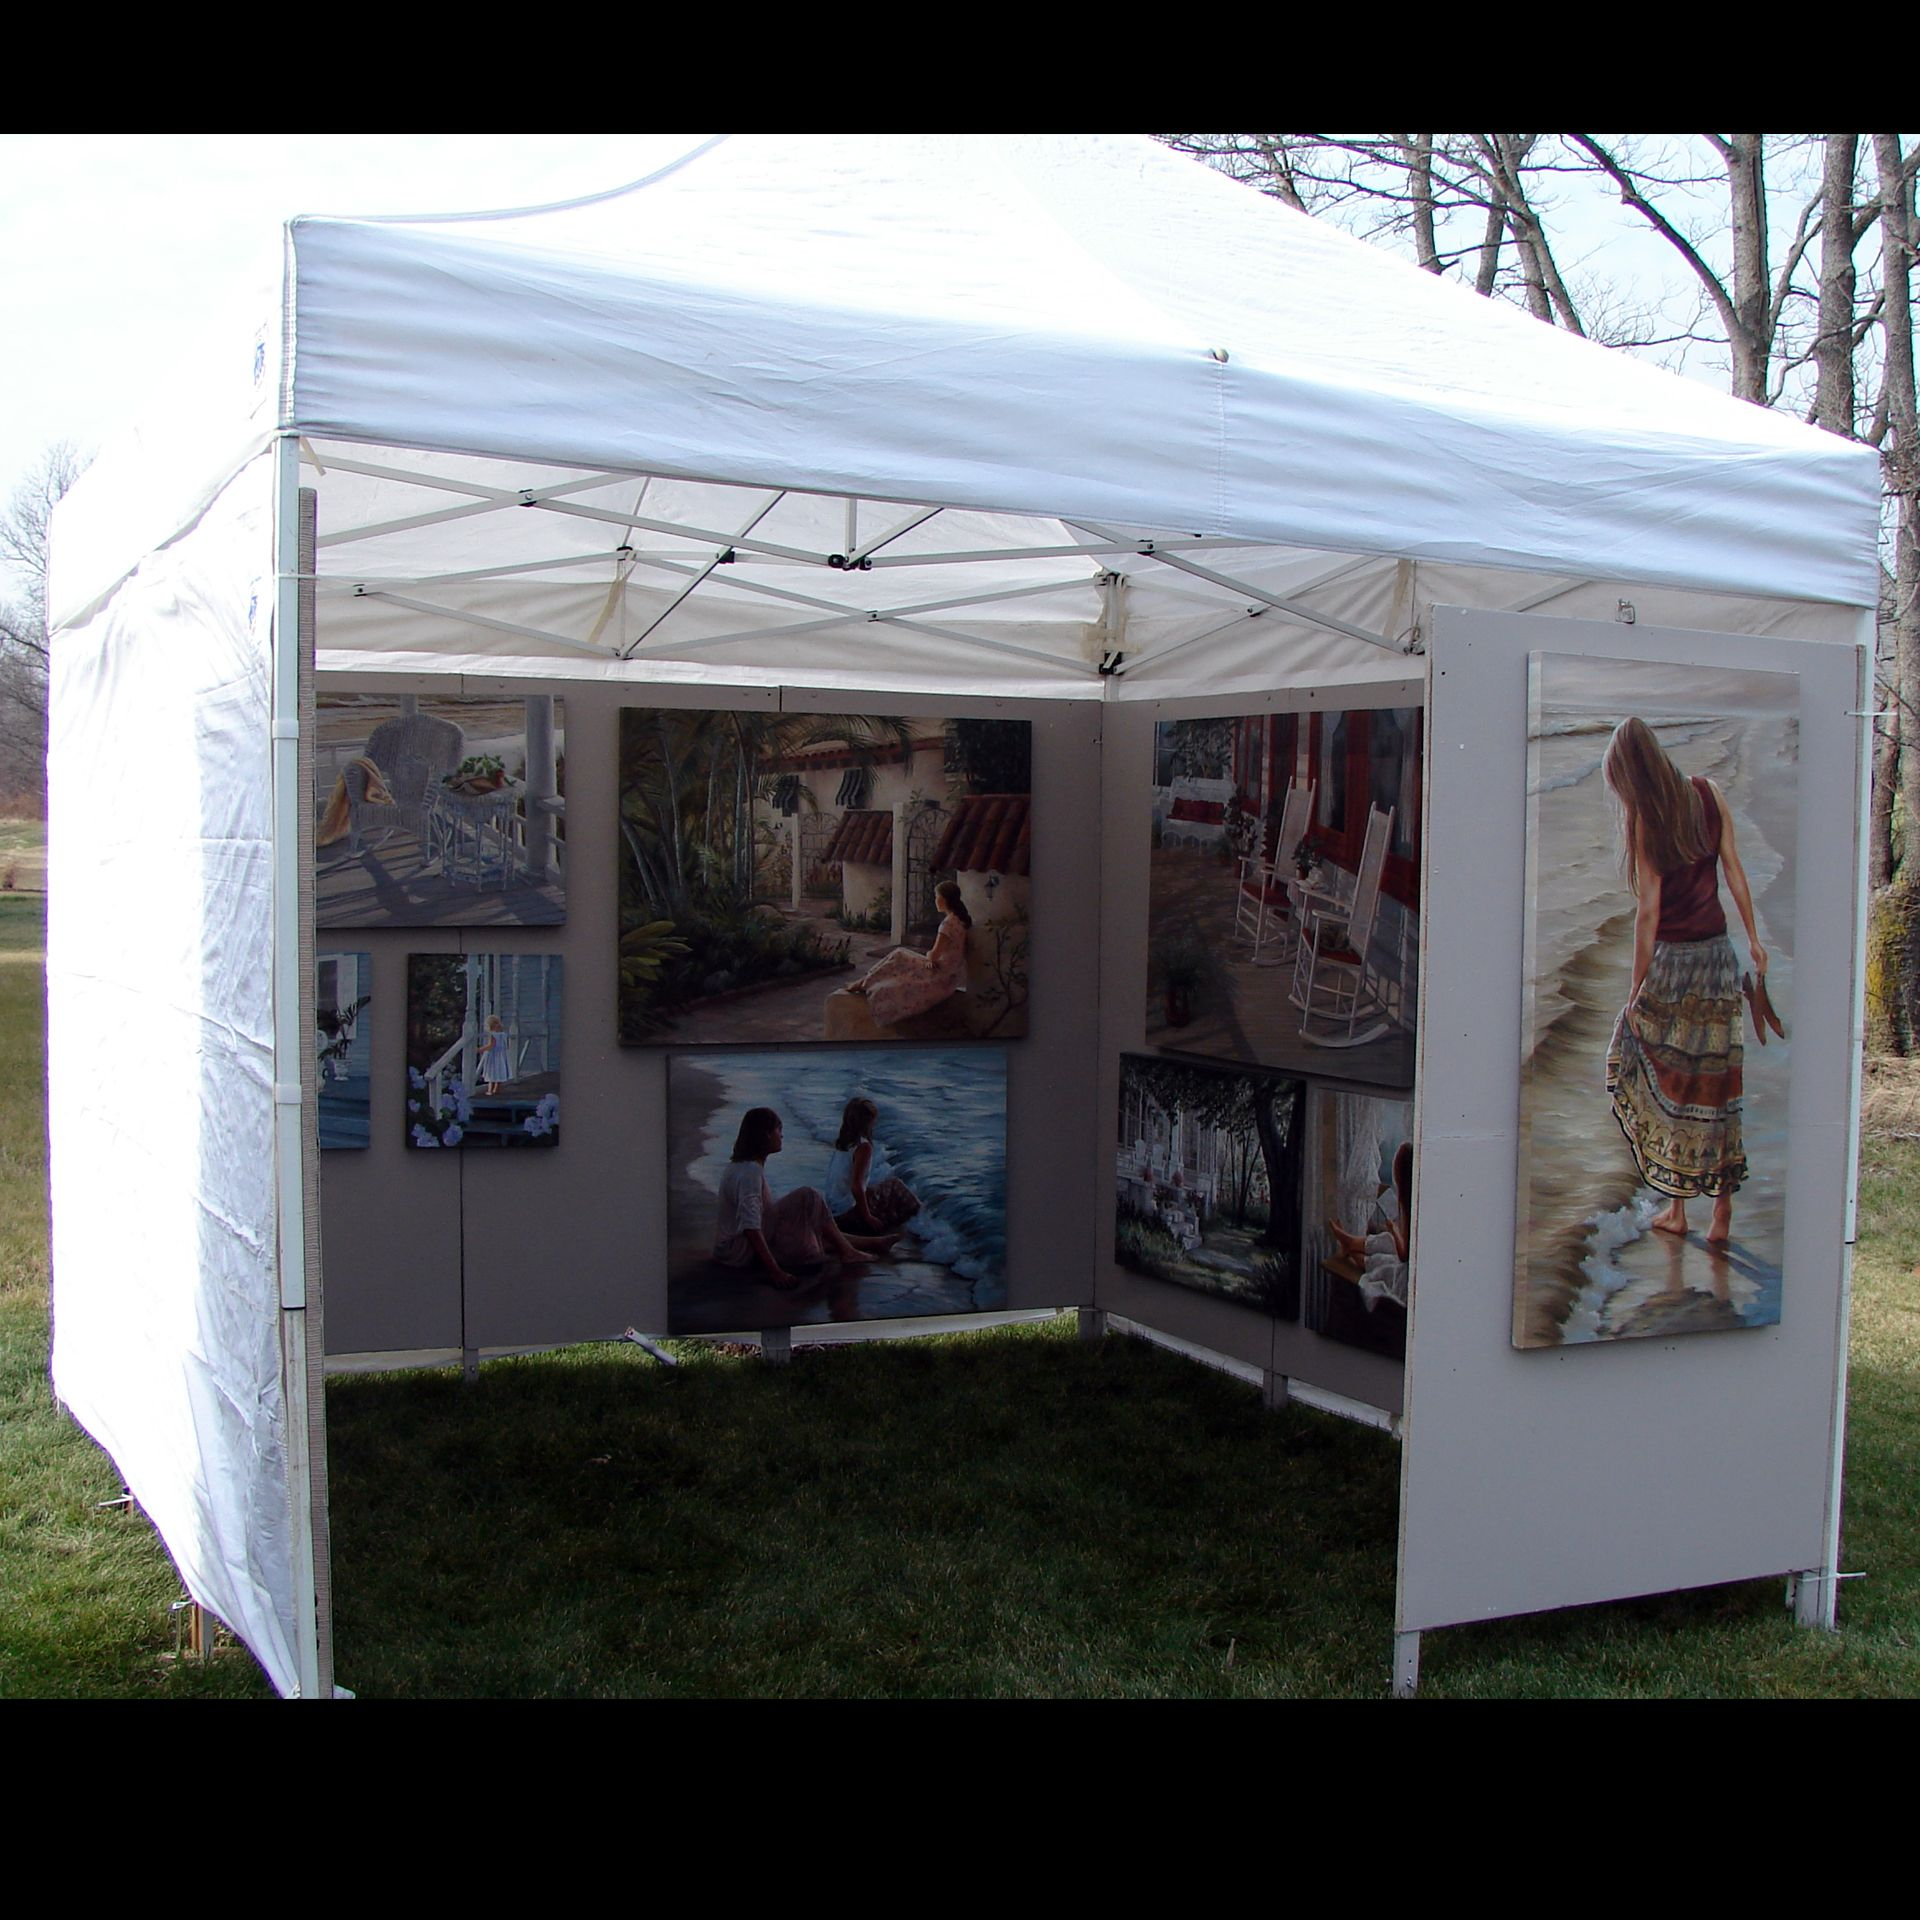 Oil paintings on my art show display booth